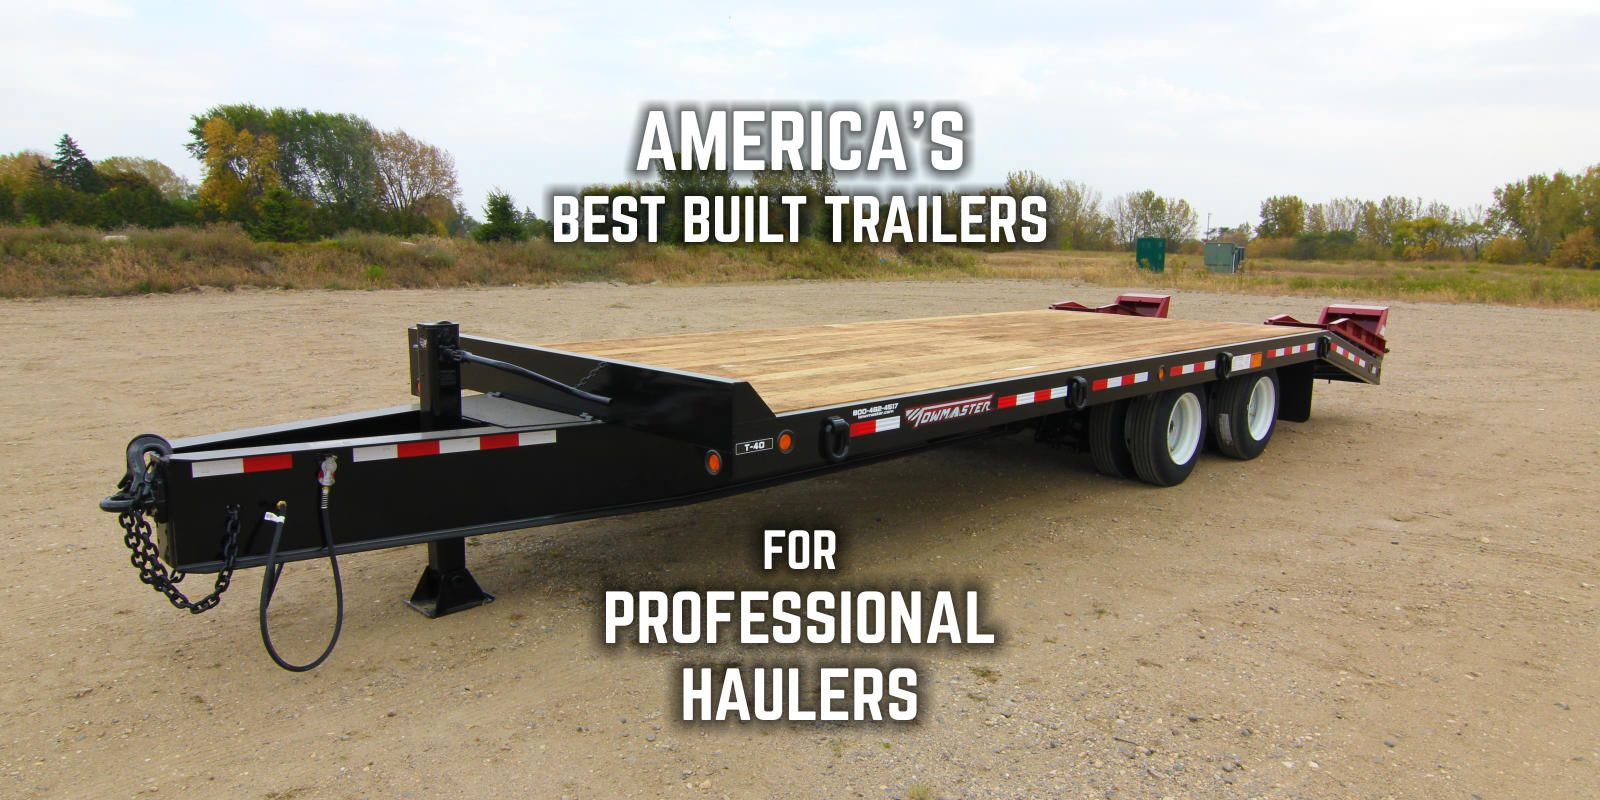 Towmaster Trailers Americas Best Built For Professional Double Car Trailer 24 Foot Gooseneck Flatbed What Makes A Great